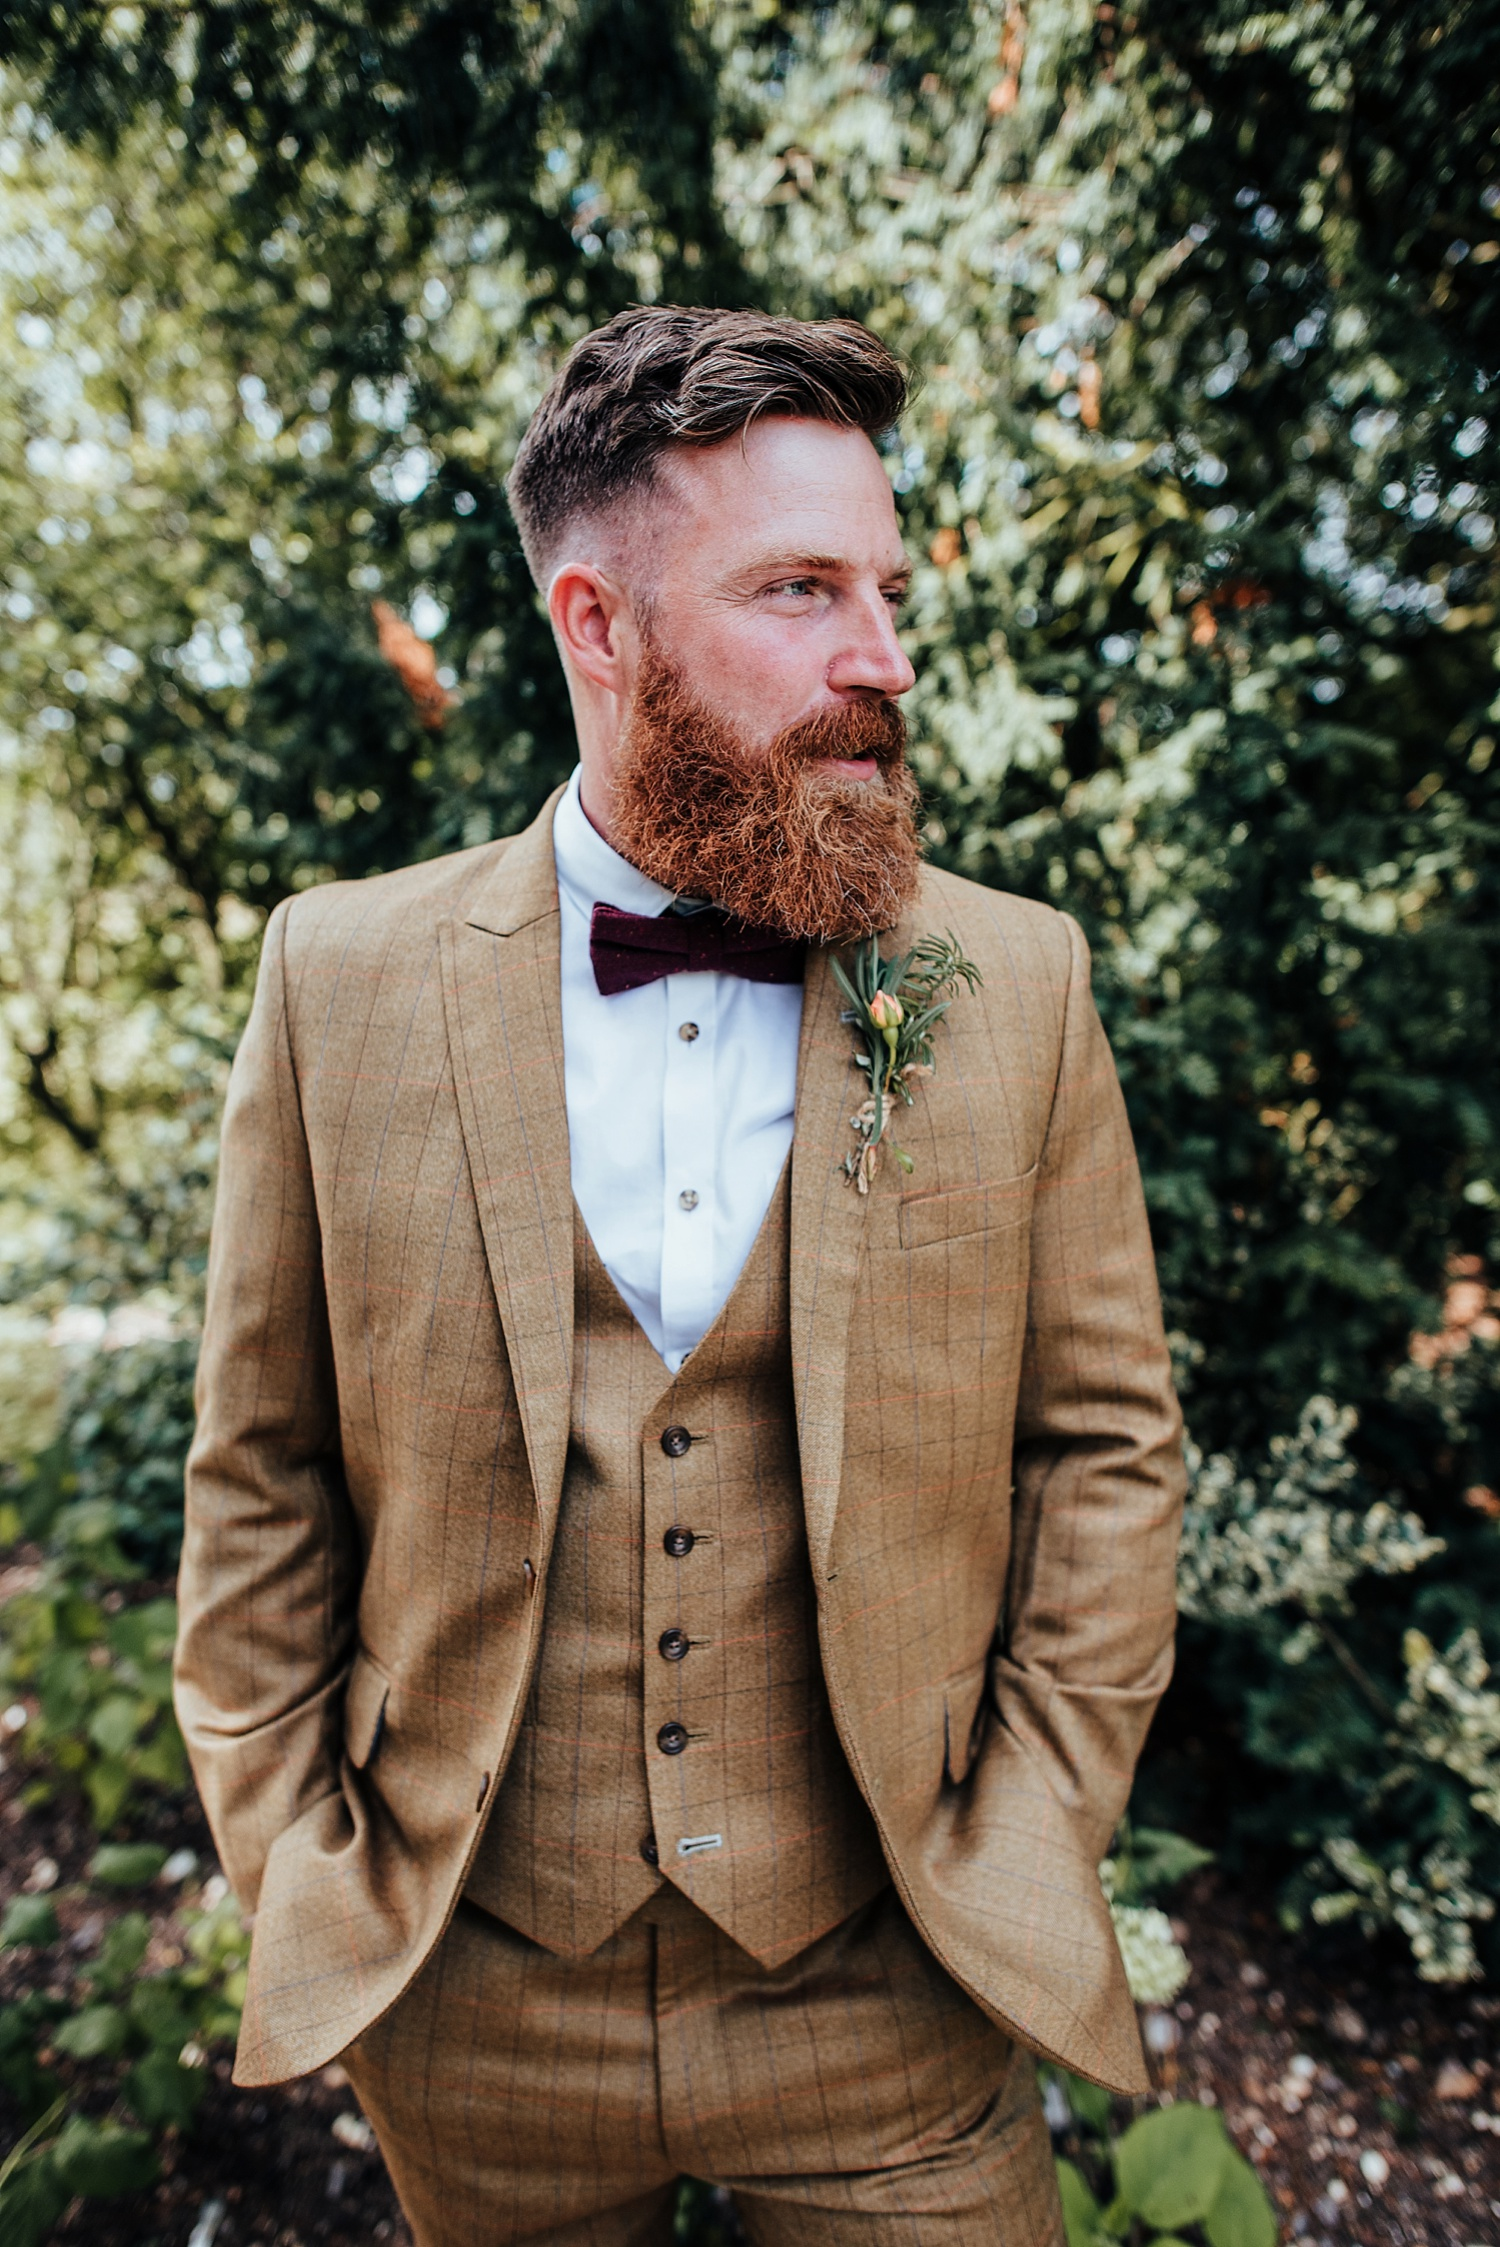 groom with long beard wearing brown tweed dress2kill suit and bowtie